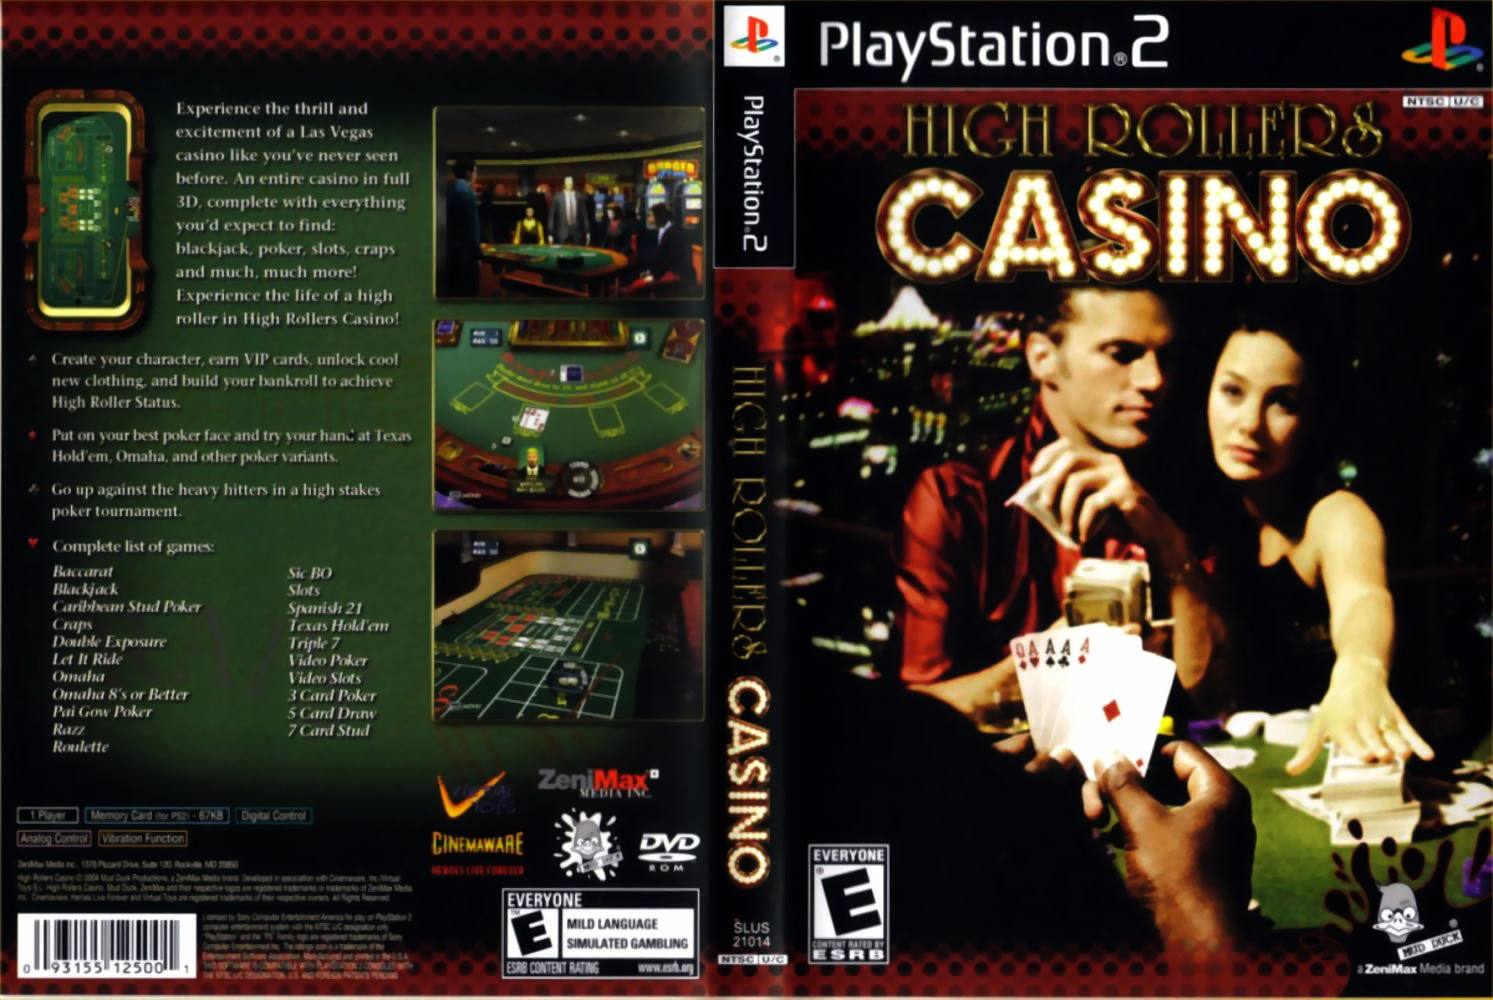 casino the movie online kasino online